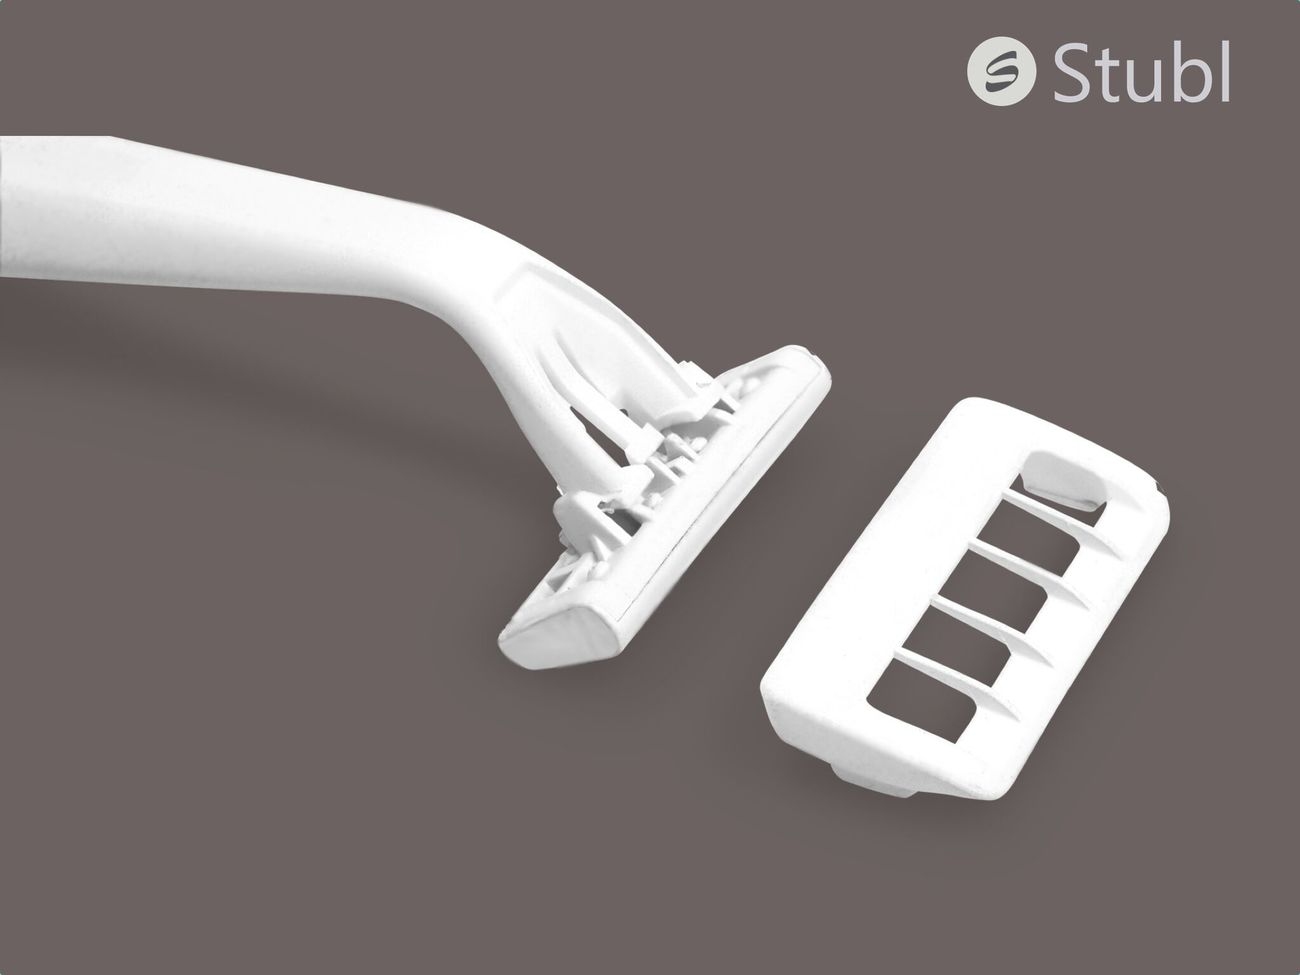 Stubl – The First Blade for the Perfect Stubble Shave